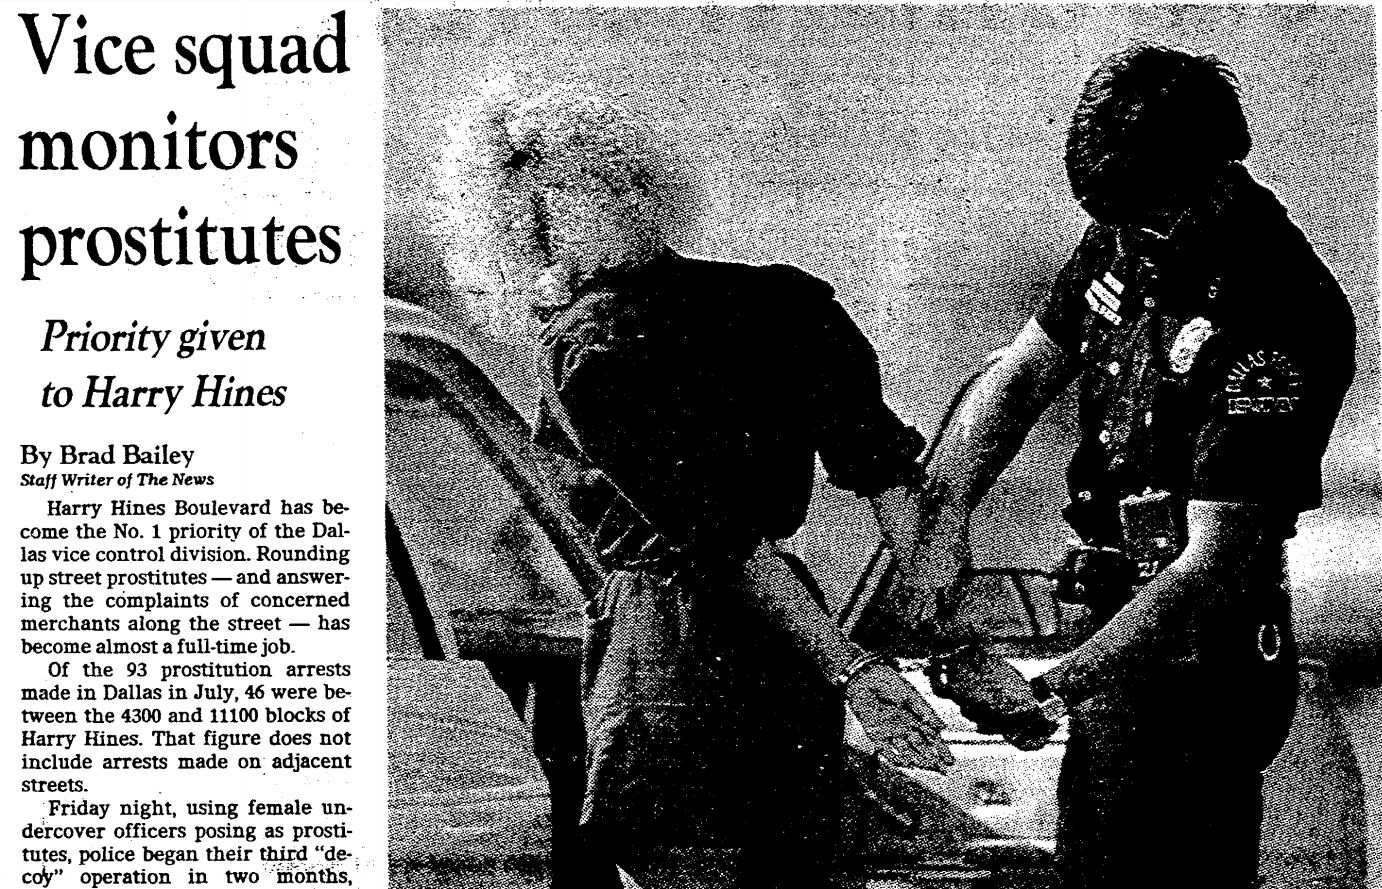 This story ran in The Dallas Morning News on Aug. 13, 1983. Twenty-five years later, there is no vice squad. At least, not right now.